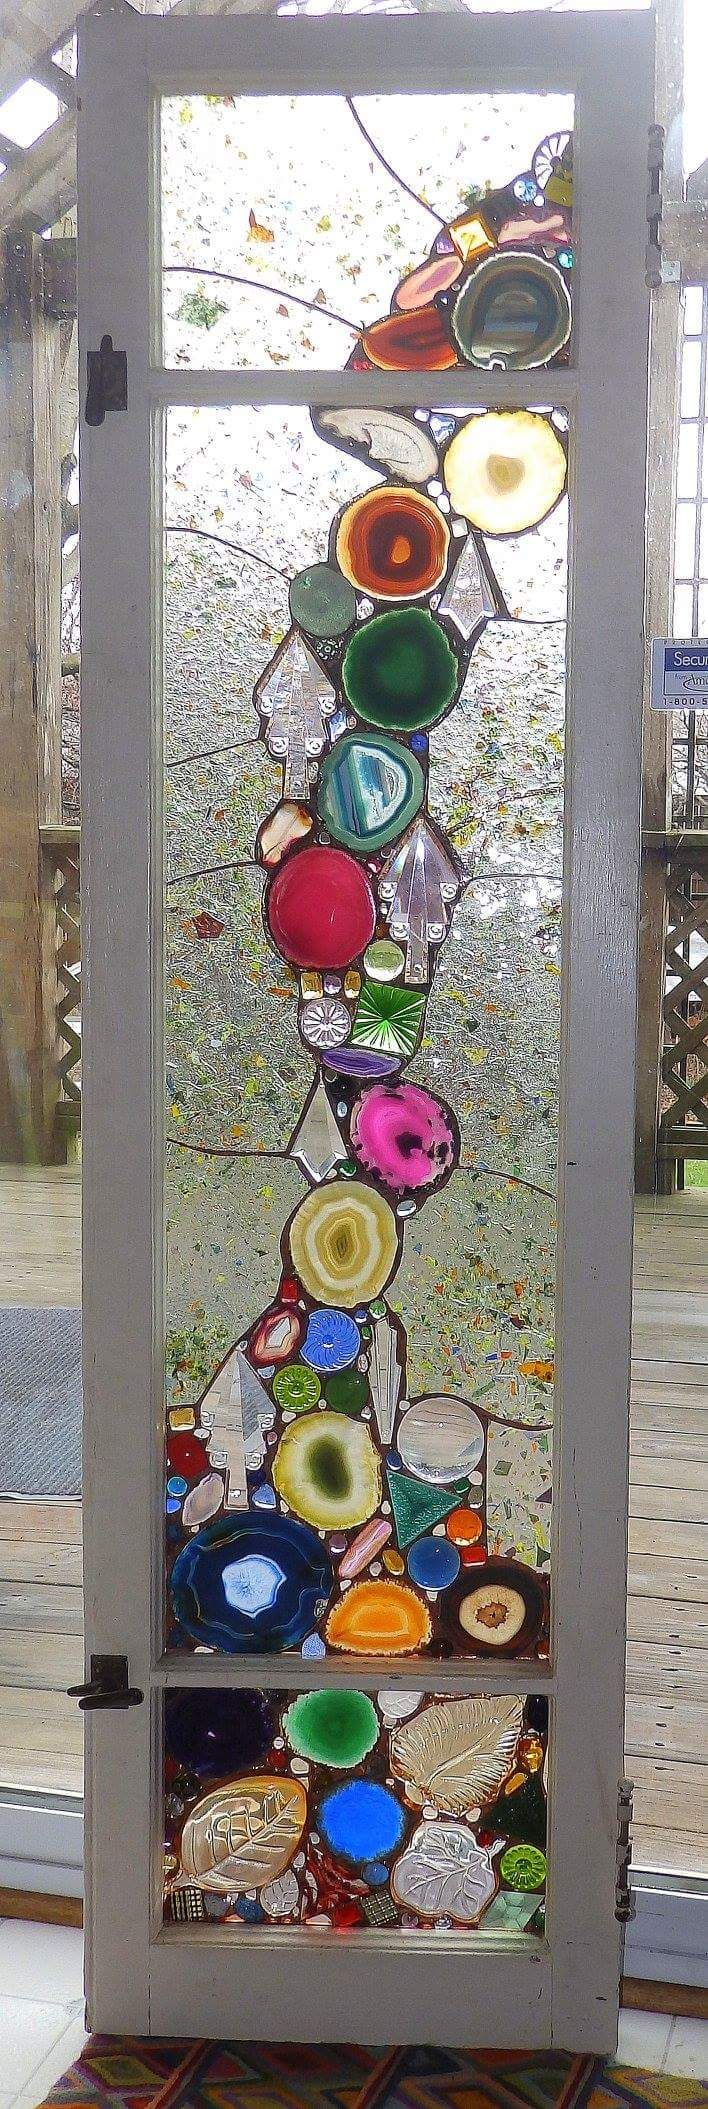 """Alison's Stained Glass - """"This is an advanced form of stained glass, where I use antique/vintage glass inclusions in each piece. All individually foiled and soldered with classic stained glass as the background. I also recycle old window sashes to use as my frames"""""""